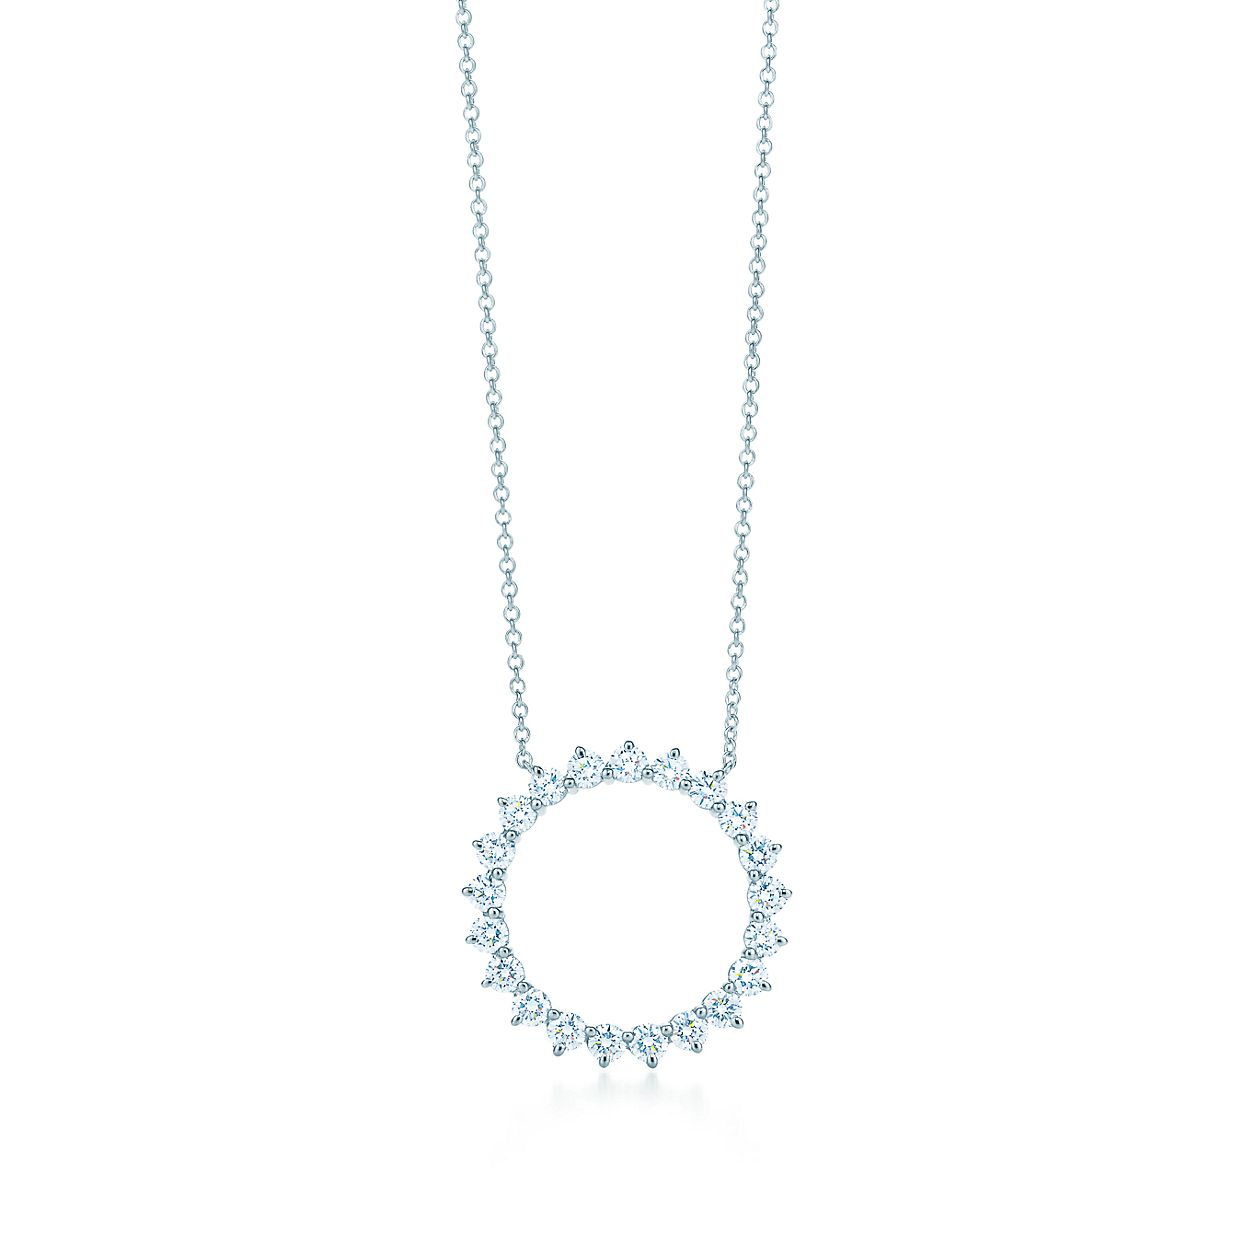 875e32a0d Tiffany Circle Diamond Pendant Necklace - Pendant Design Ideas